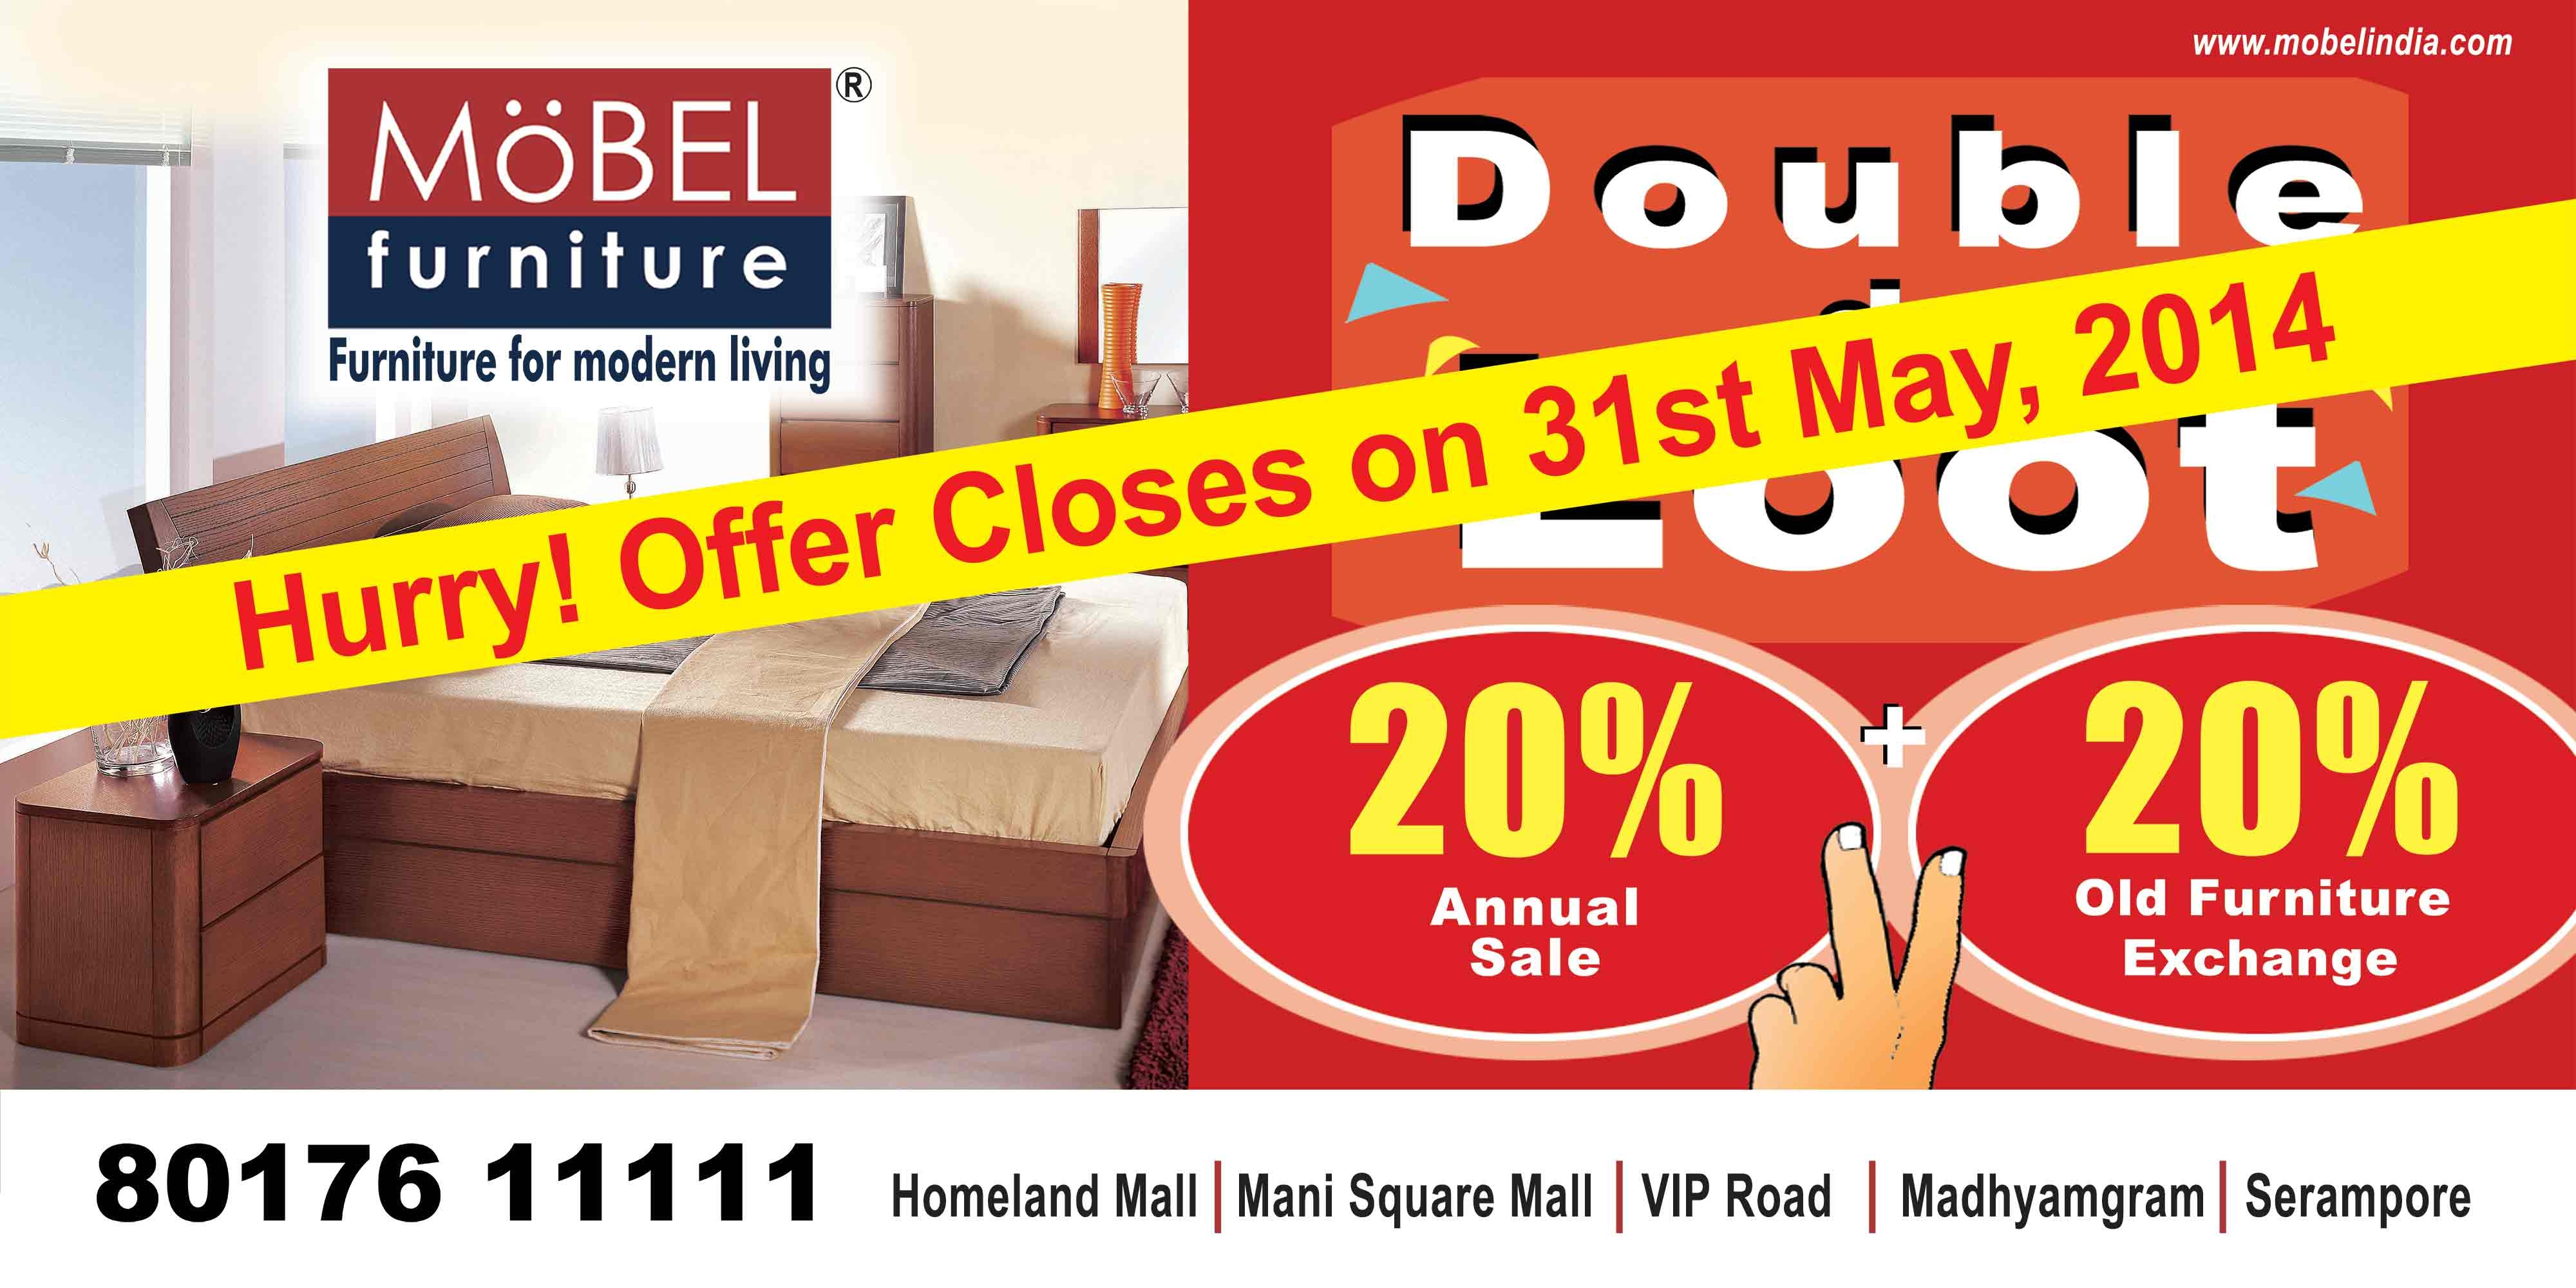 Möbel Online Discount Mobel S Furniture Exchange Offer Closing On 31st May 2014 Buy